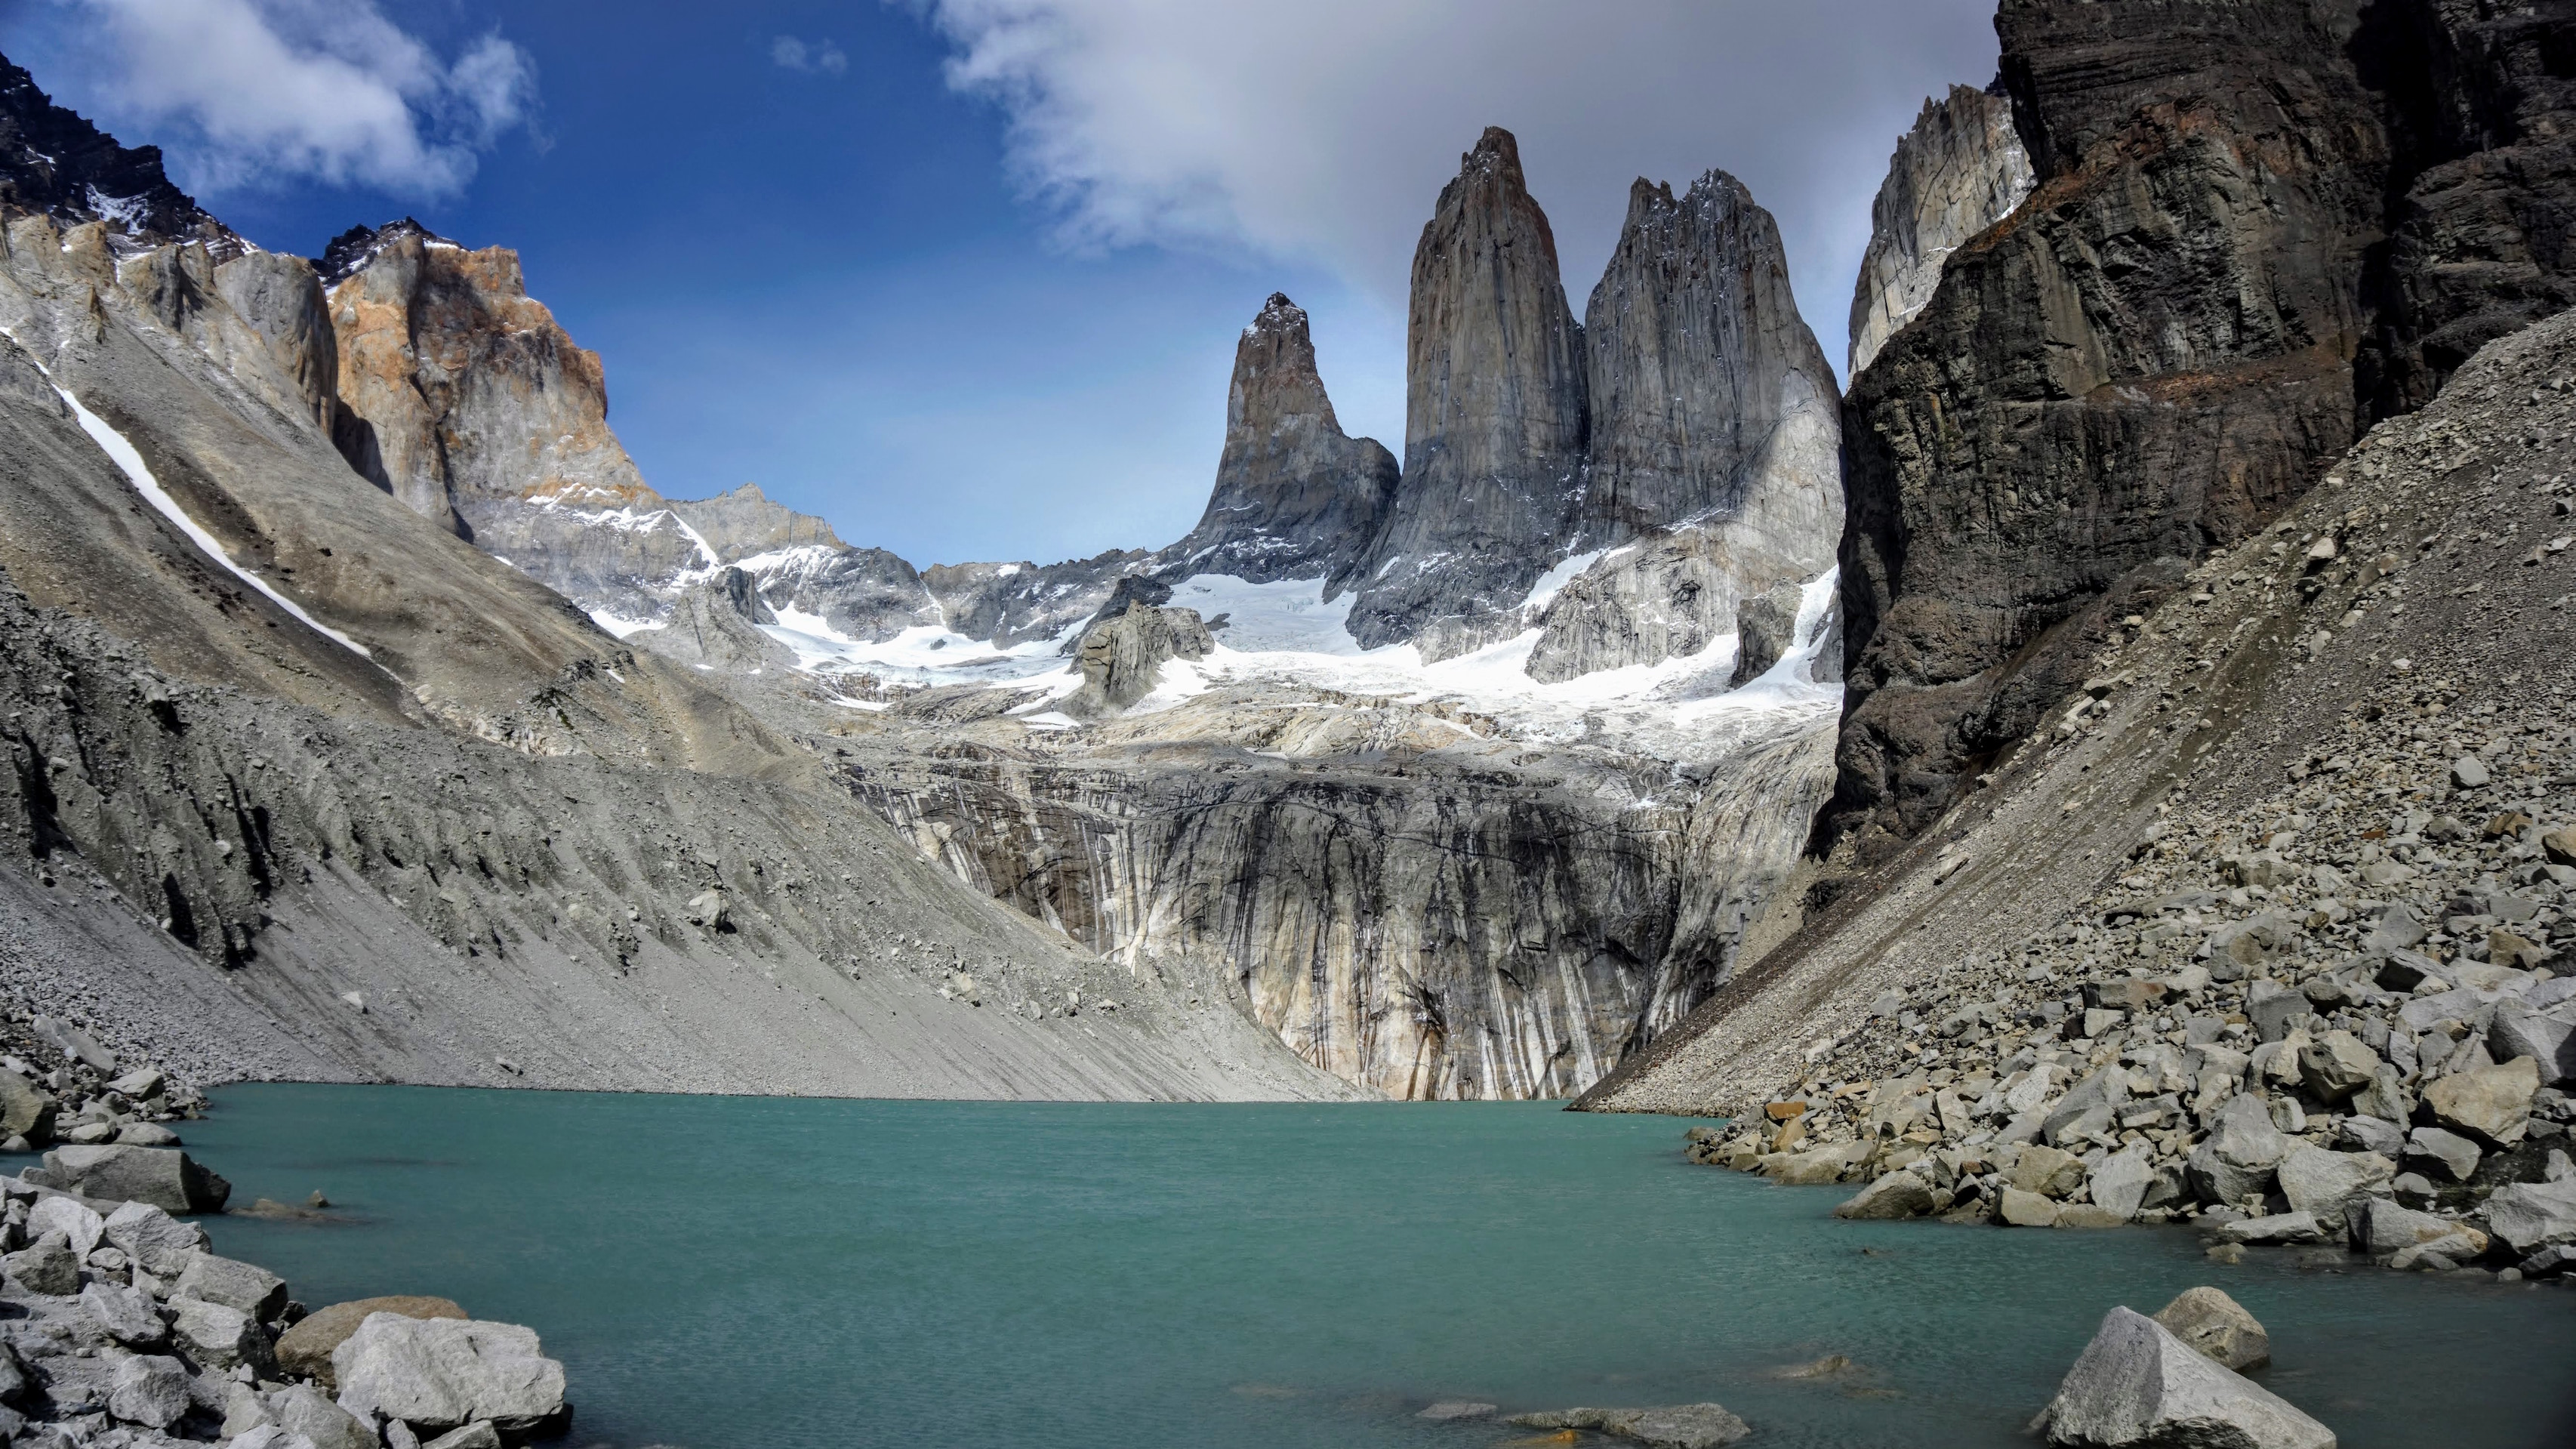 Private donation and government reallocation created more than 10 million acres of new parks, increasing the national park land of Chile by 38.5%.